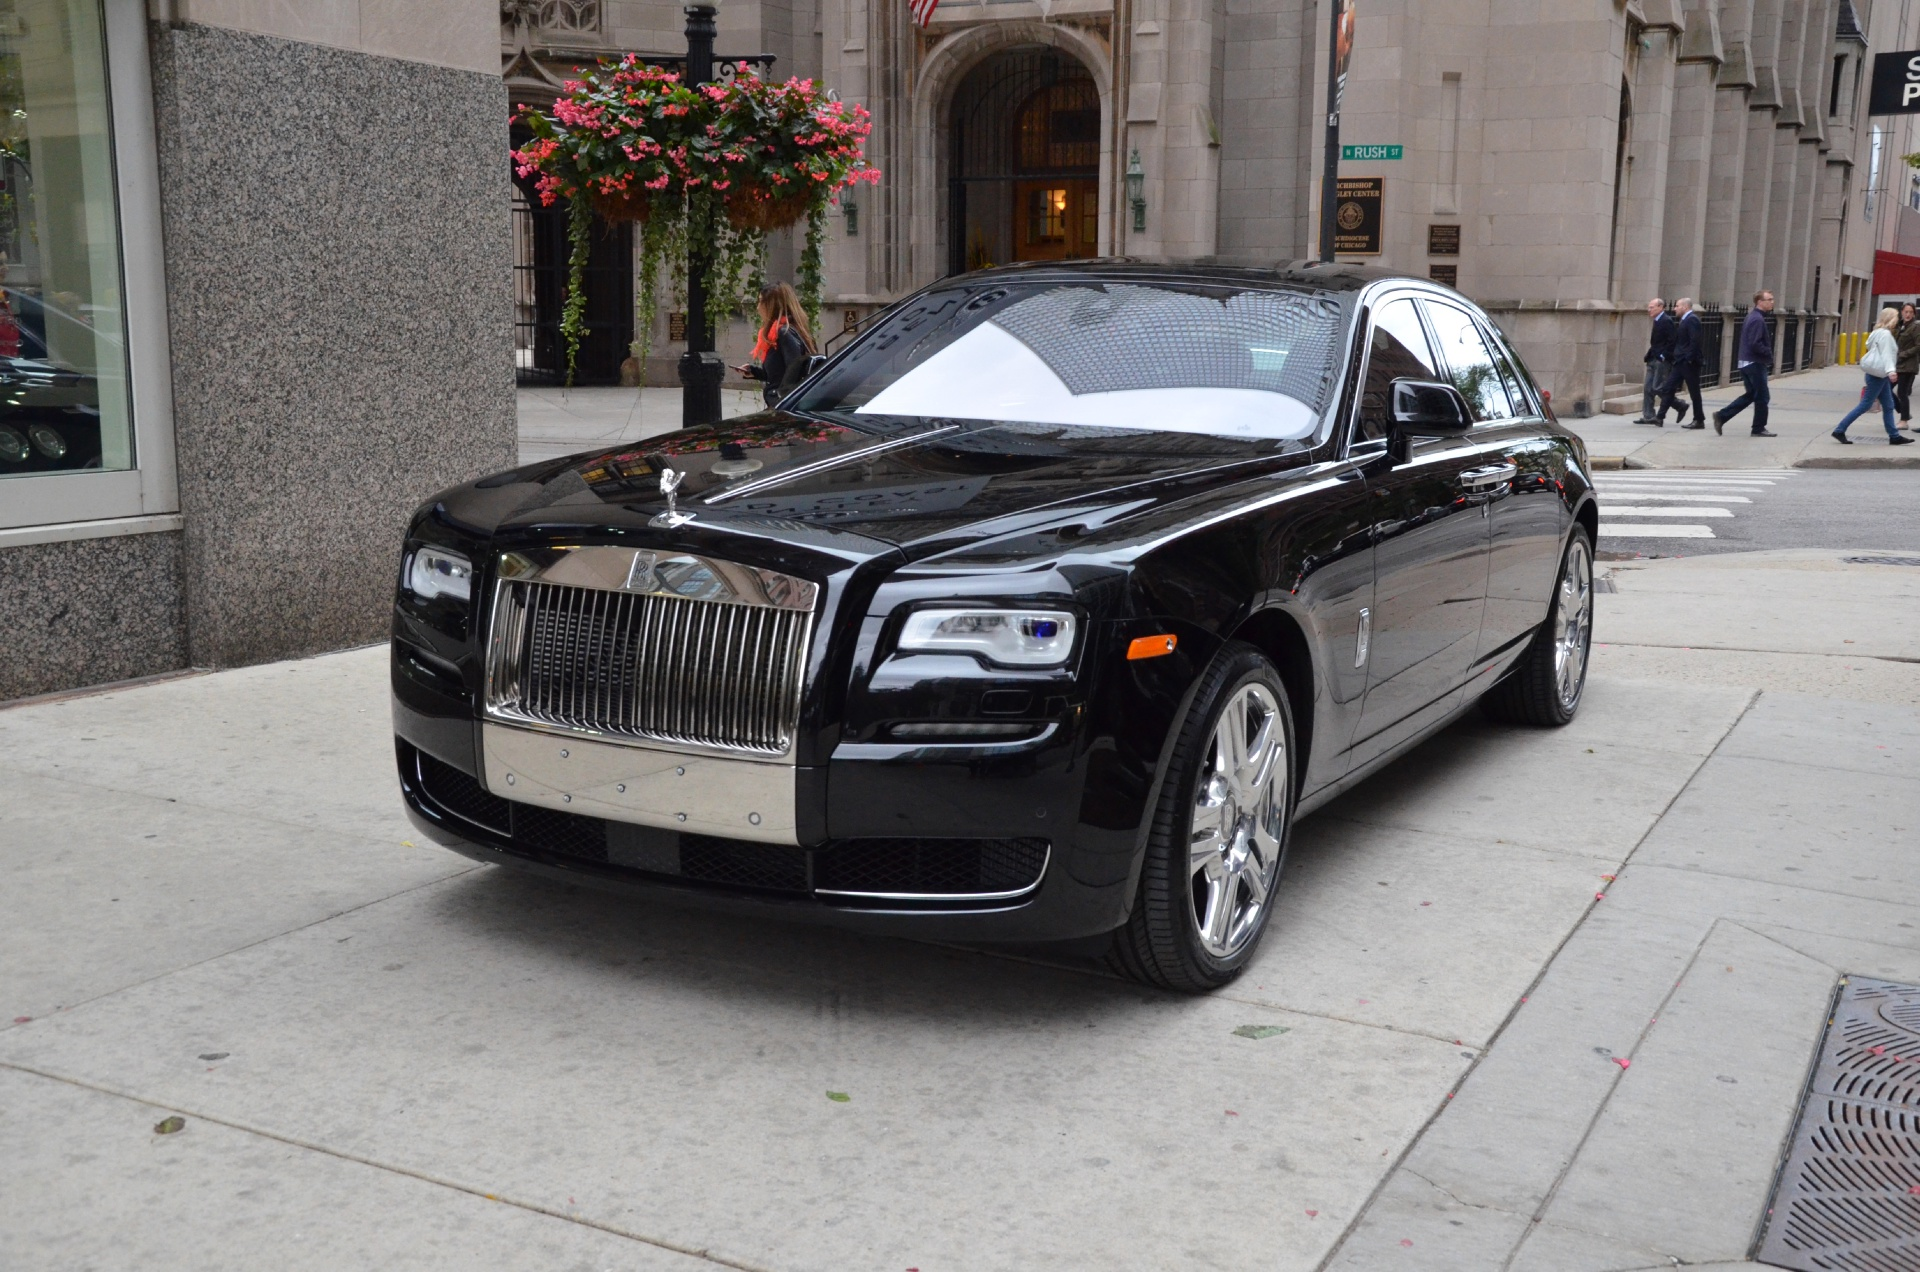 2015 Rolls Royce Phantom #2